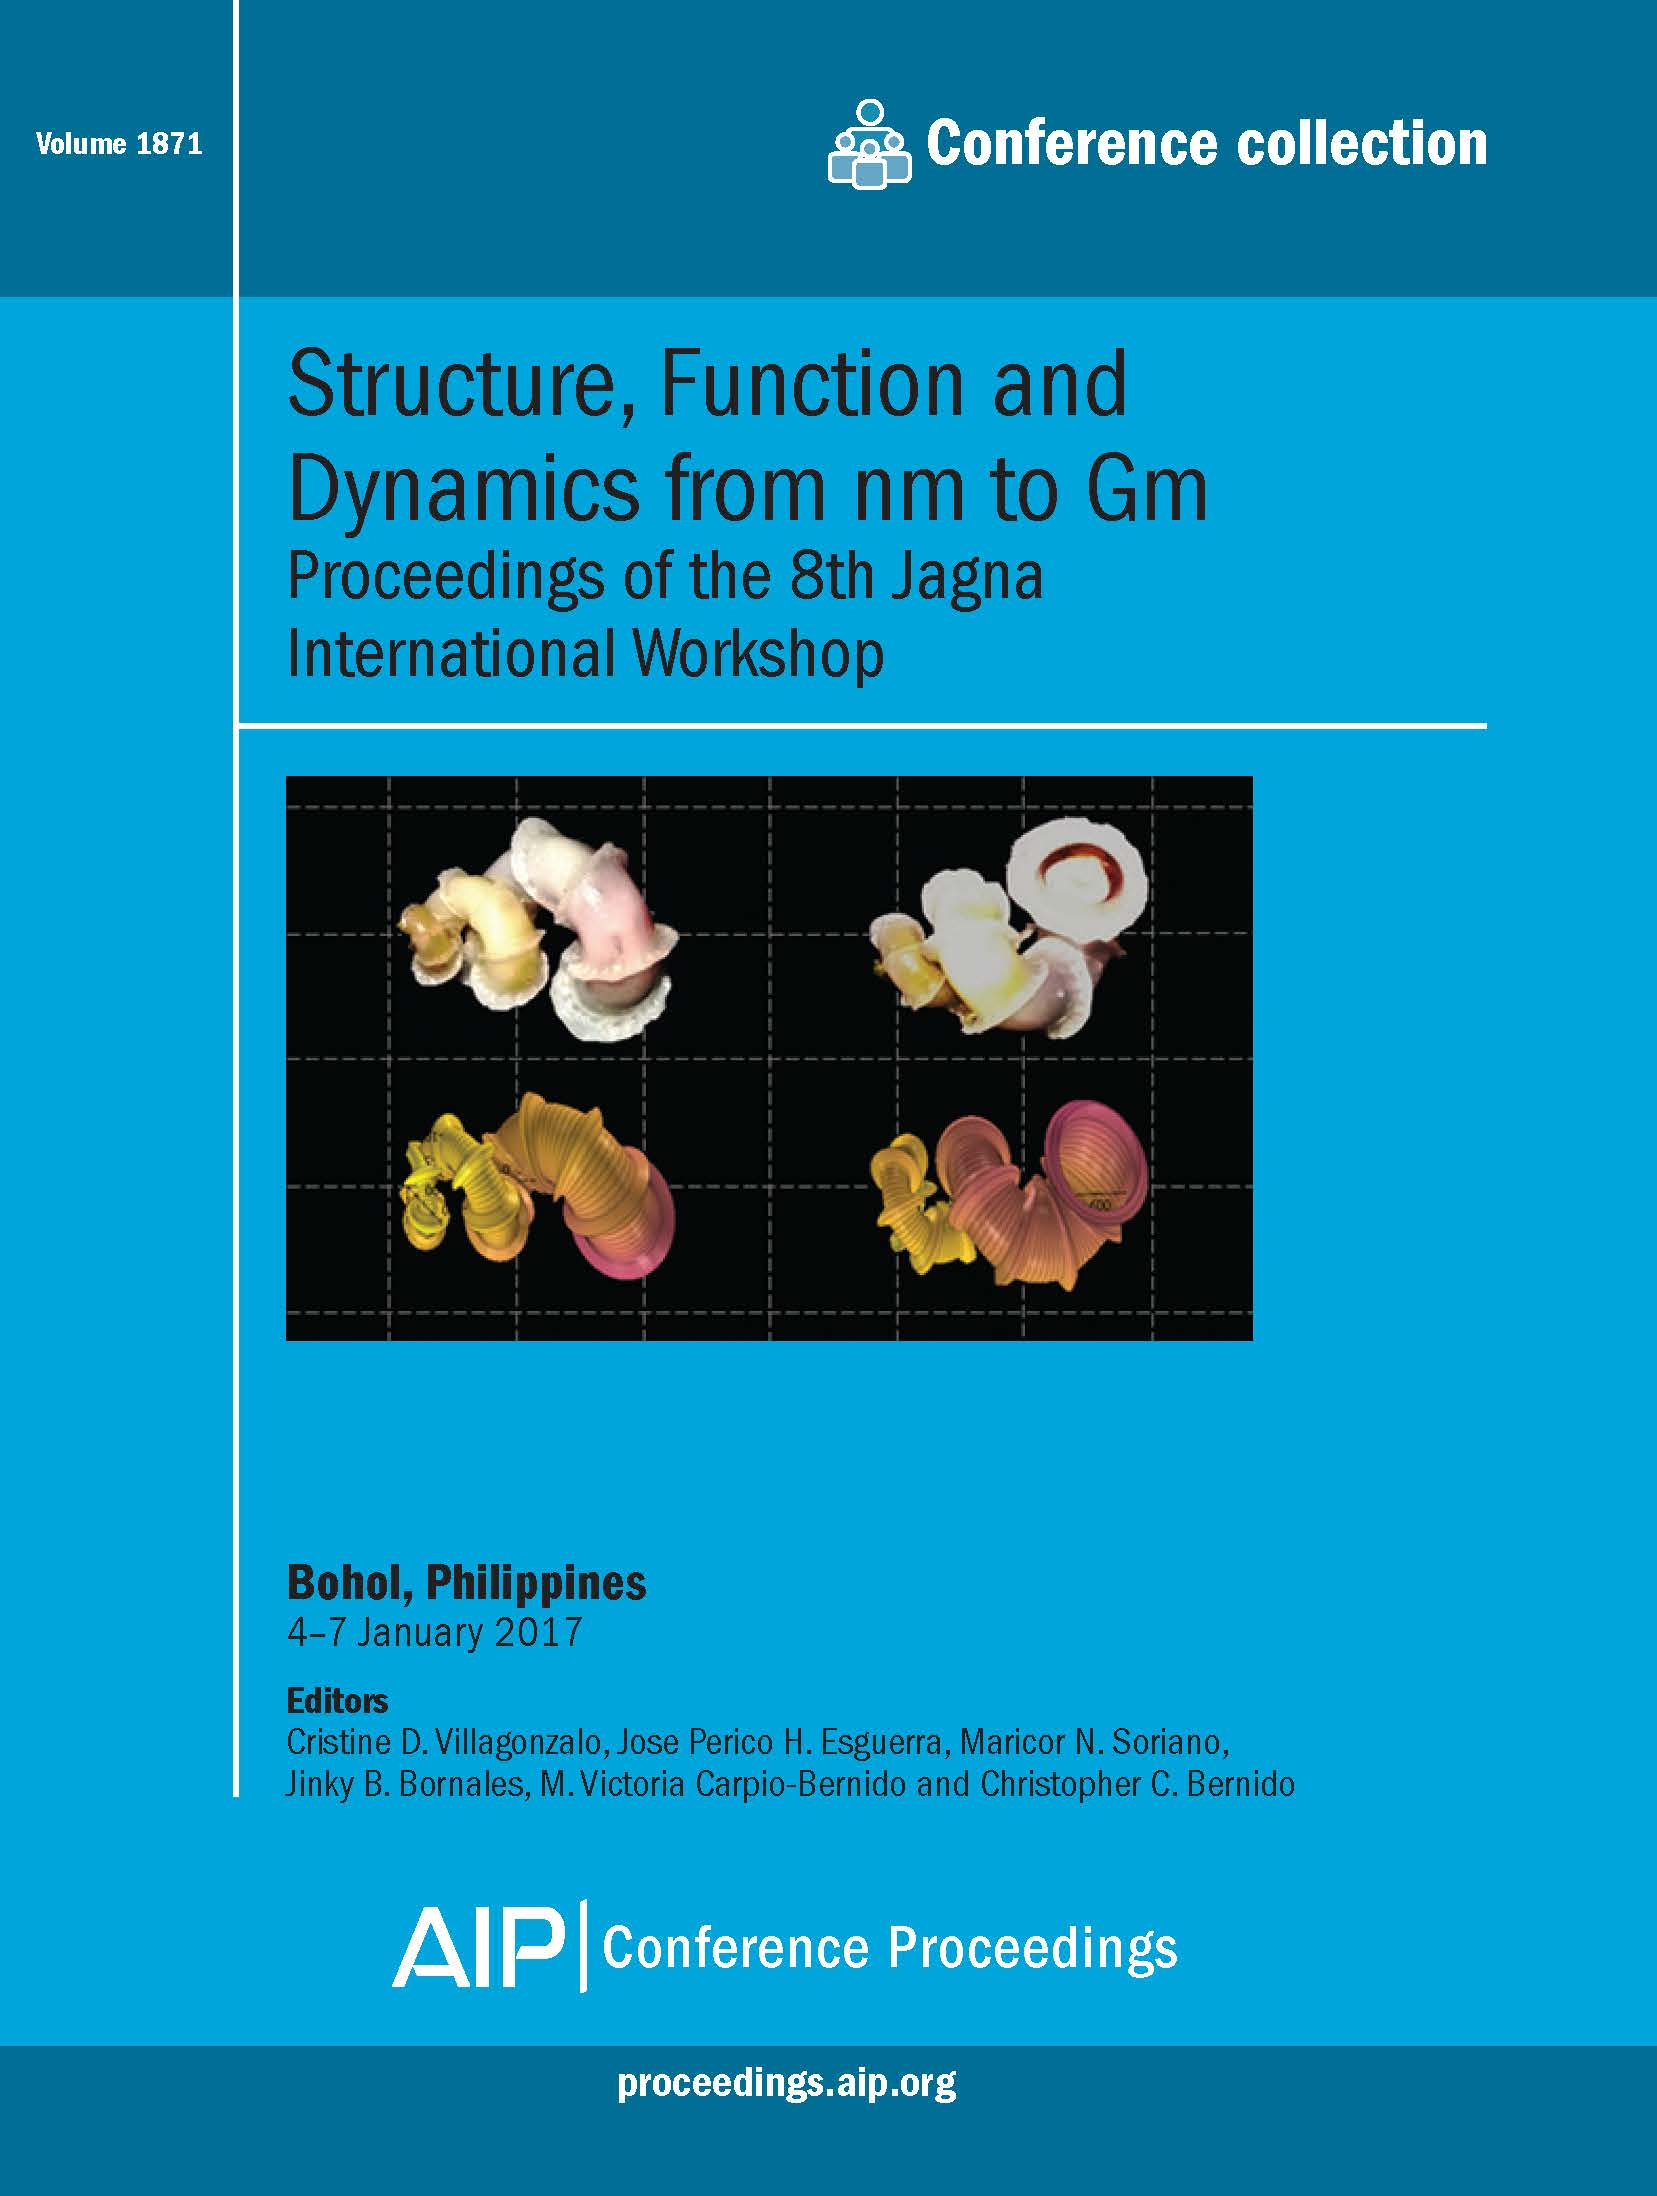 Volume 1871: Structure, Function and Dynamics from nm to Gm